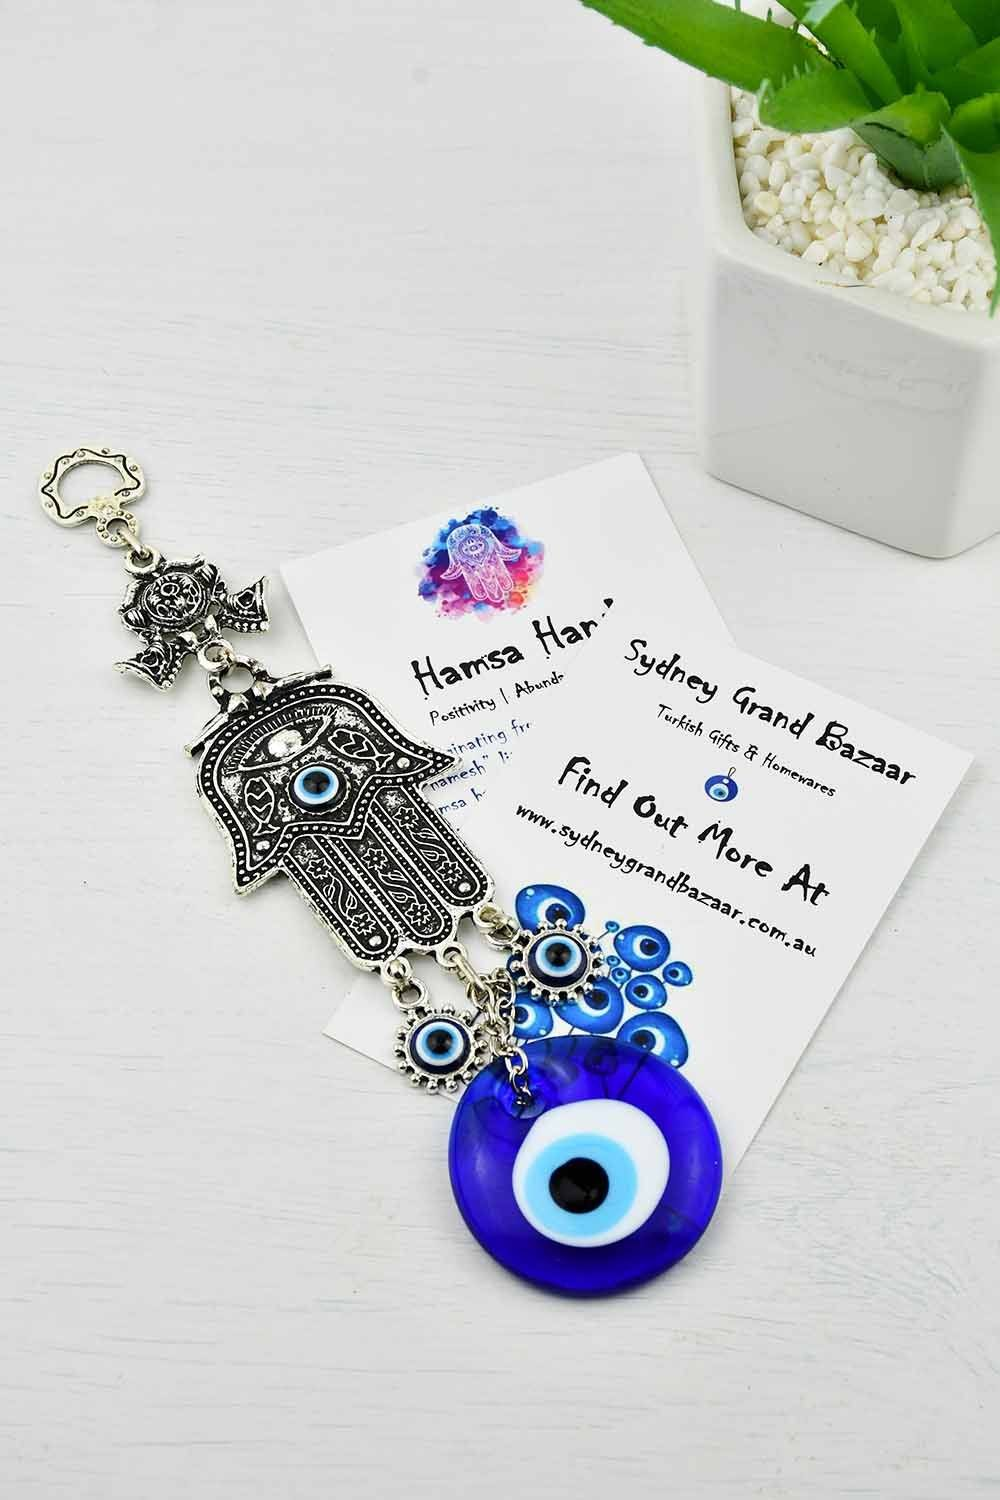 Evil Eye and Hamsa Hand Ornament Medium Evil Eye Sydney Grand Bazaar